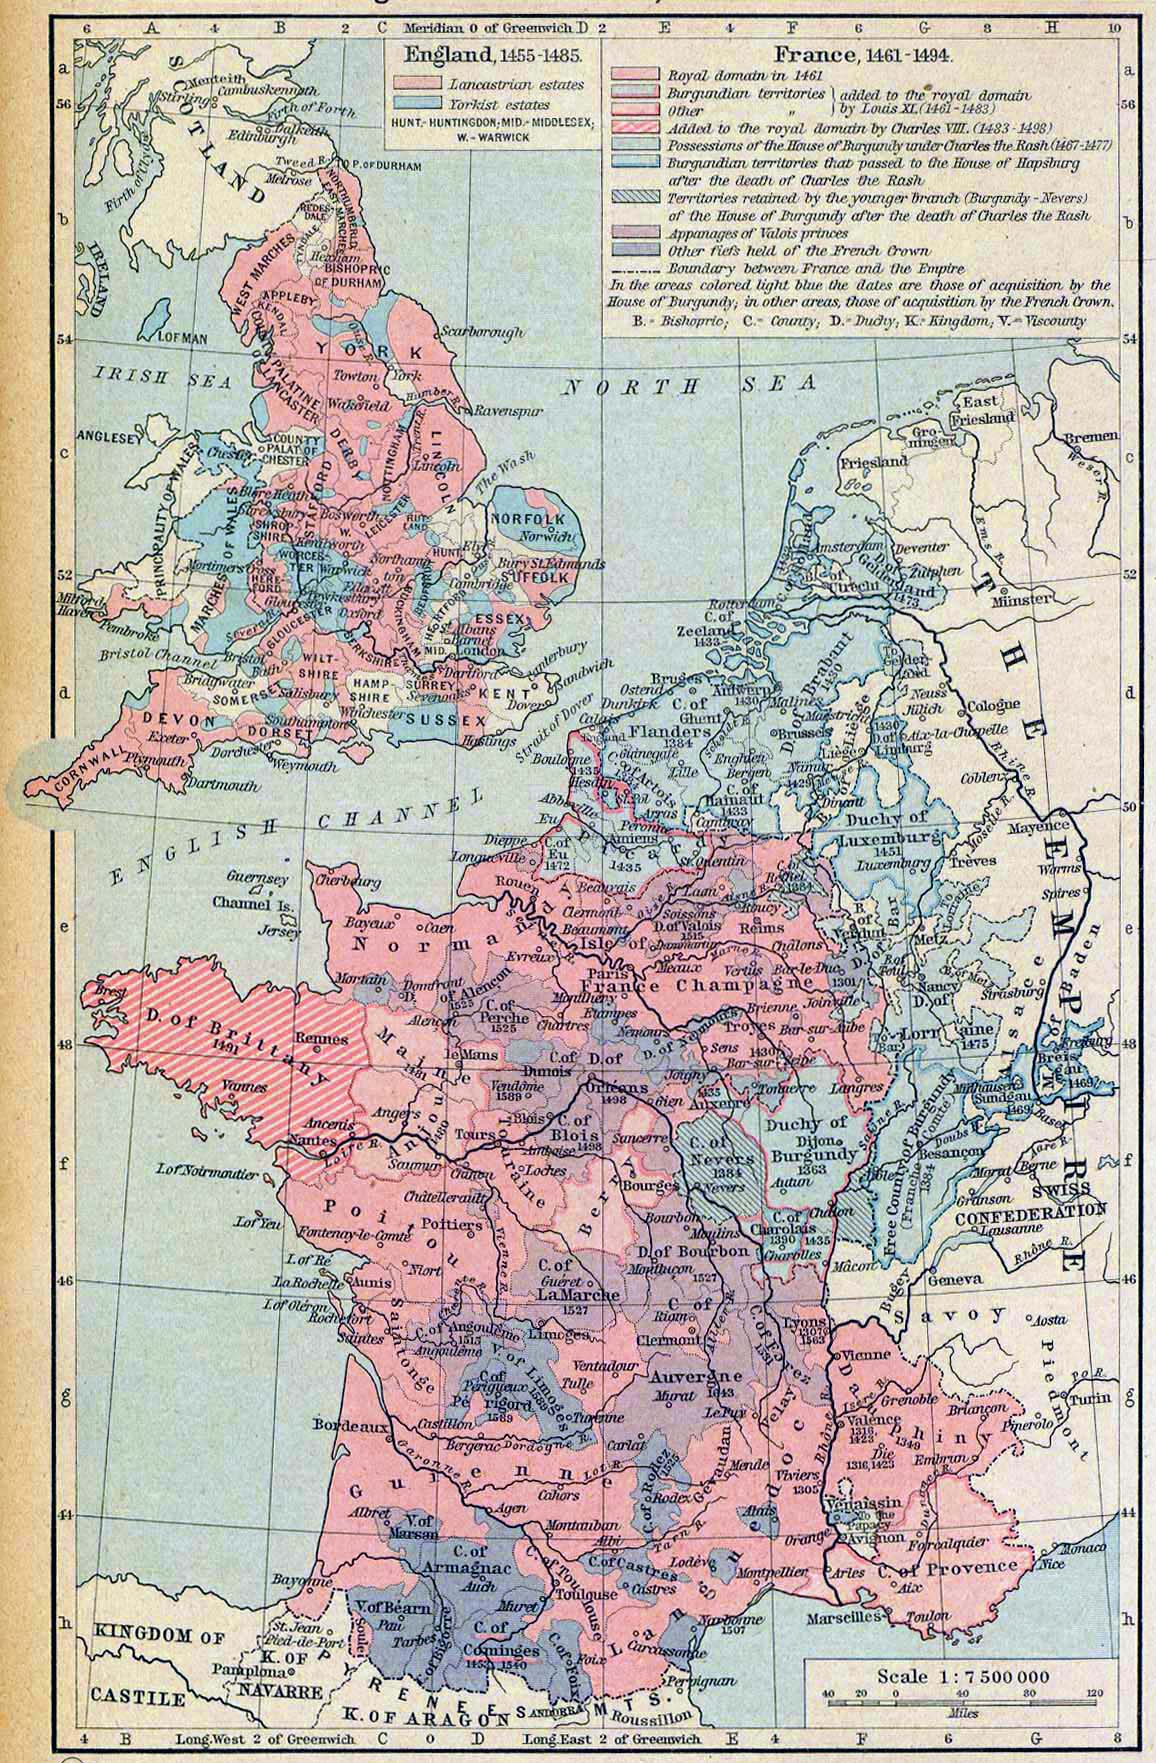 Map of England and France 1455-1494